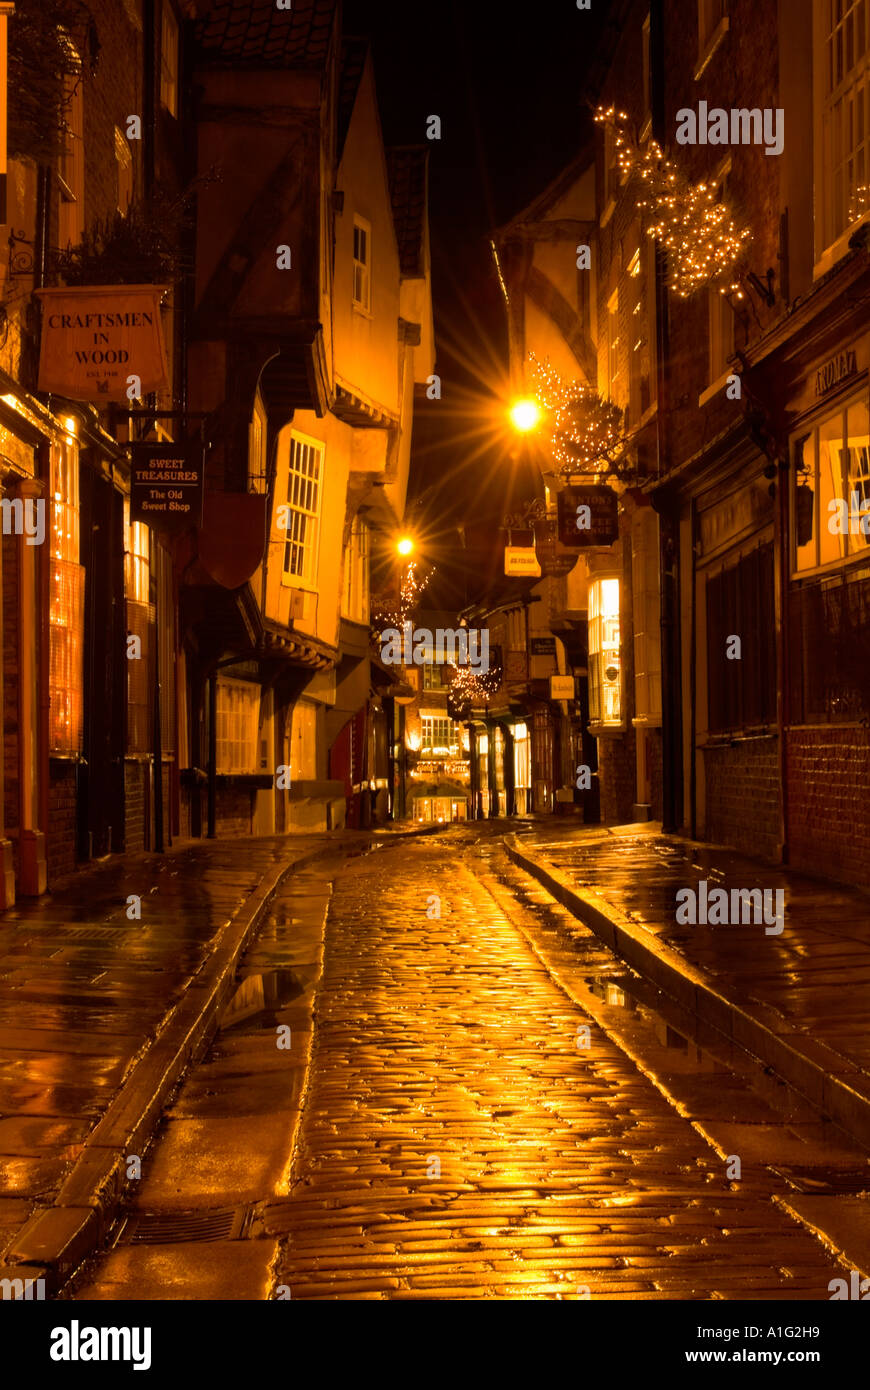 'All is calm, all is bright' in the Shambles at Christmas - Stock Image